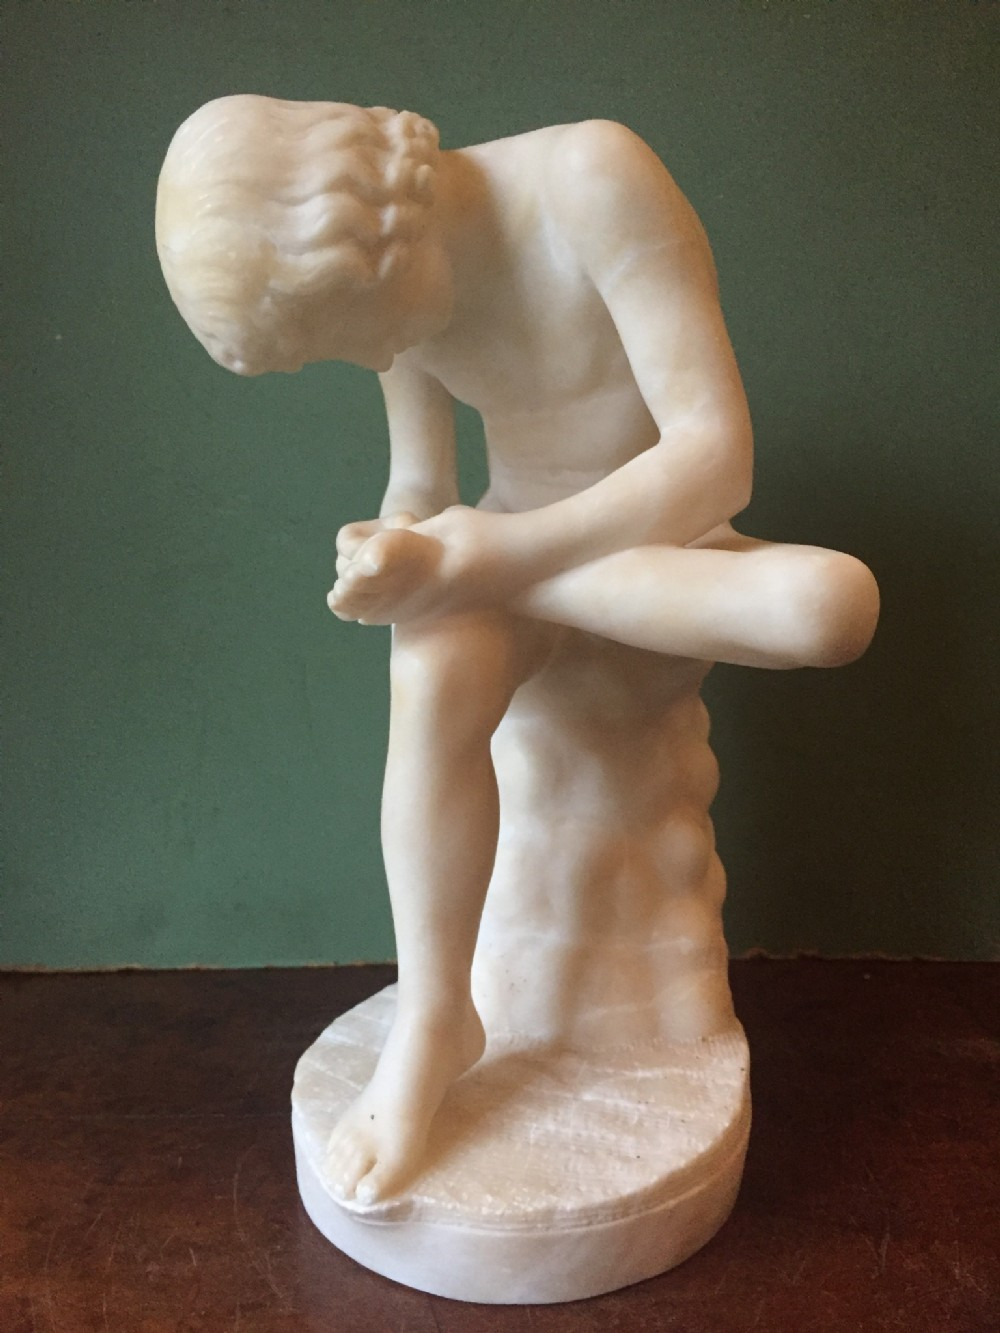 late c19th italian carved alabaster reduction 'grand tour' souvenir after the antique of spinario or 'the thornpuller' signed by pietro bazzanti florence